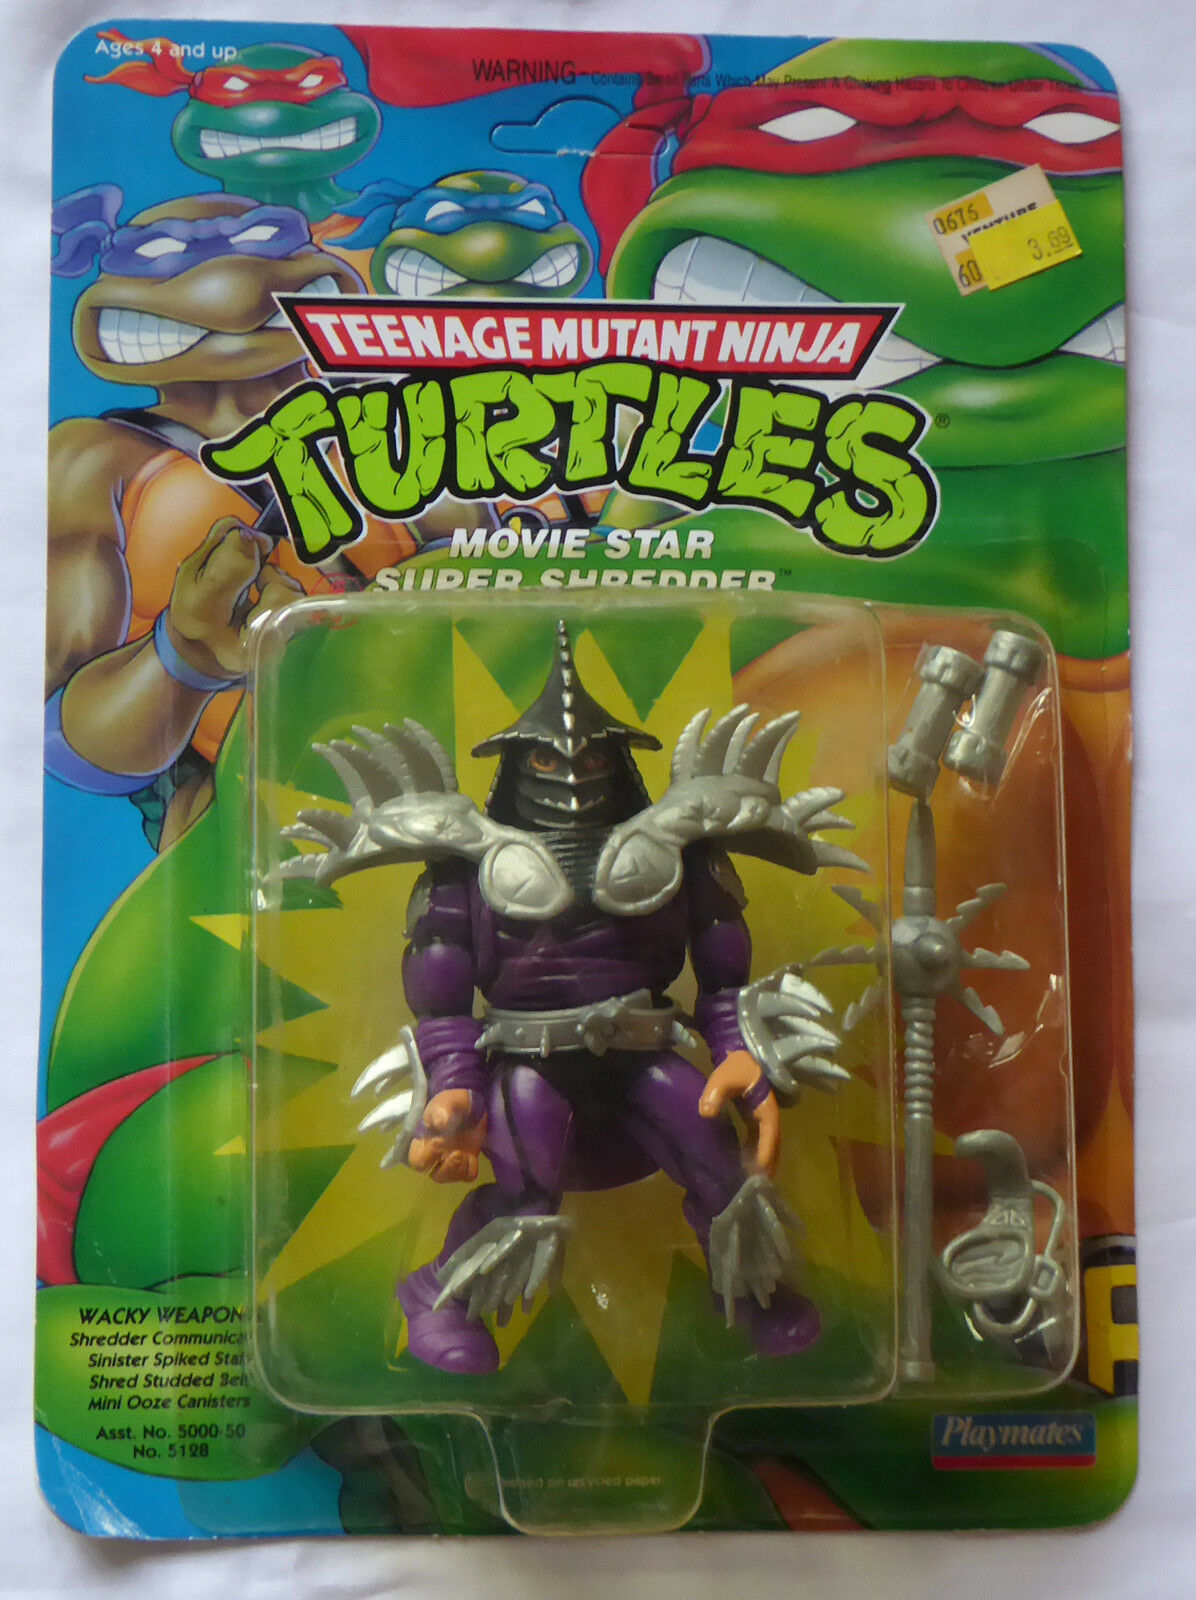 1991 tmnt teenage mutant ninja turtles bild super - schrotder misb (1992 - frage)